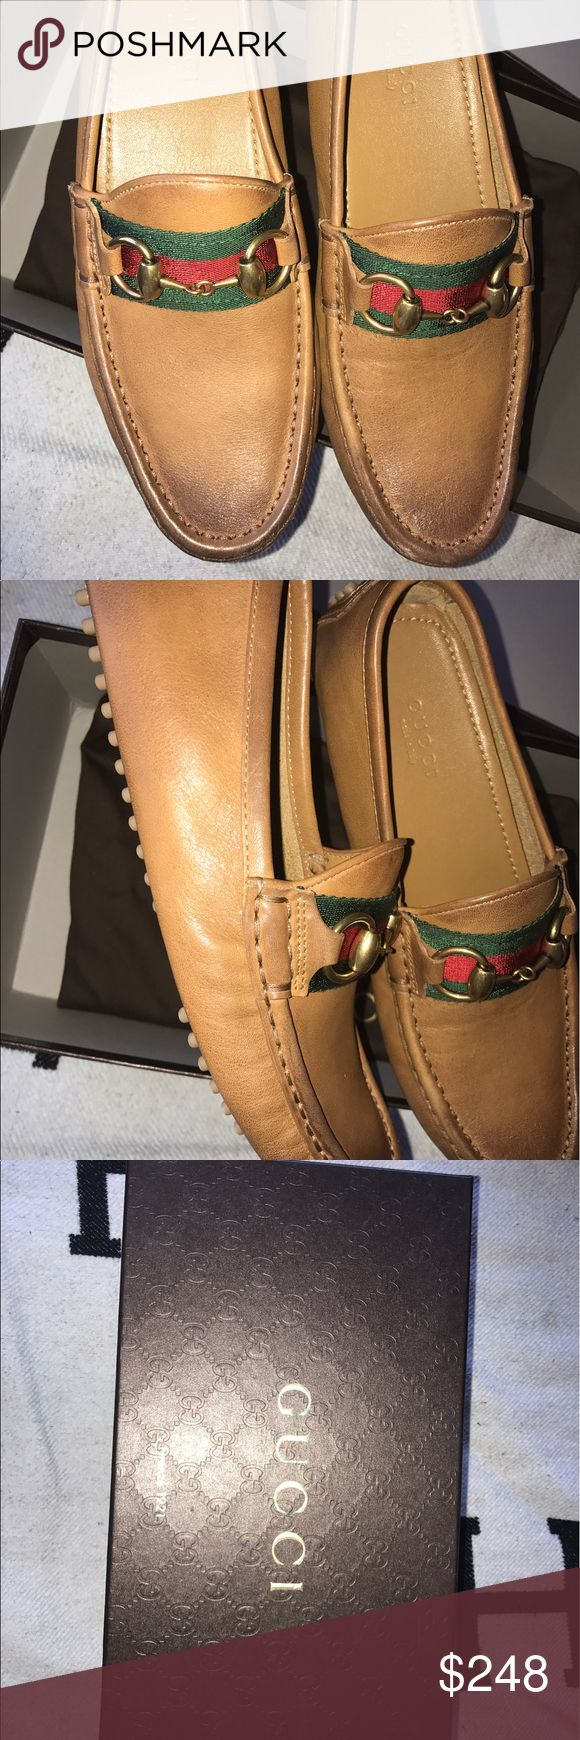 Kids Gucci loafers leather upper loafers 👞 GUCCI KIDS LEATHER LOAFERS 👞  brand new/ size 34 euro. In kids Like a 4 in USA.  Perfectly fine NEW. NEVER USED.🏷💸 Final Price 👍  Shipping 1 day! 📦📬 Make a bundle of 3+ to get 10% off your purchase !  Contact: for any further questions. Leave a comment. I will get back to you.  Thank You. ❤️ #airelavStyle #boutique #kids Gucci Shoes Moccasins